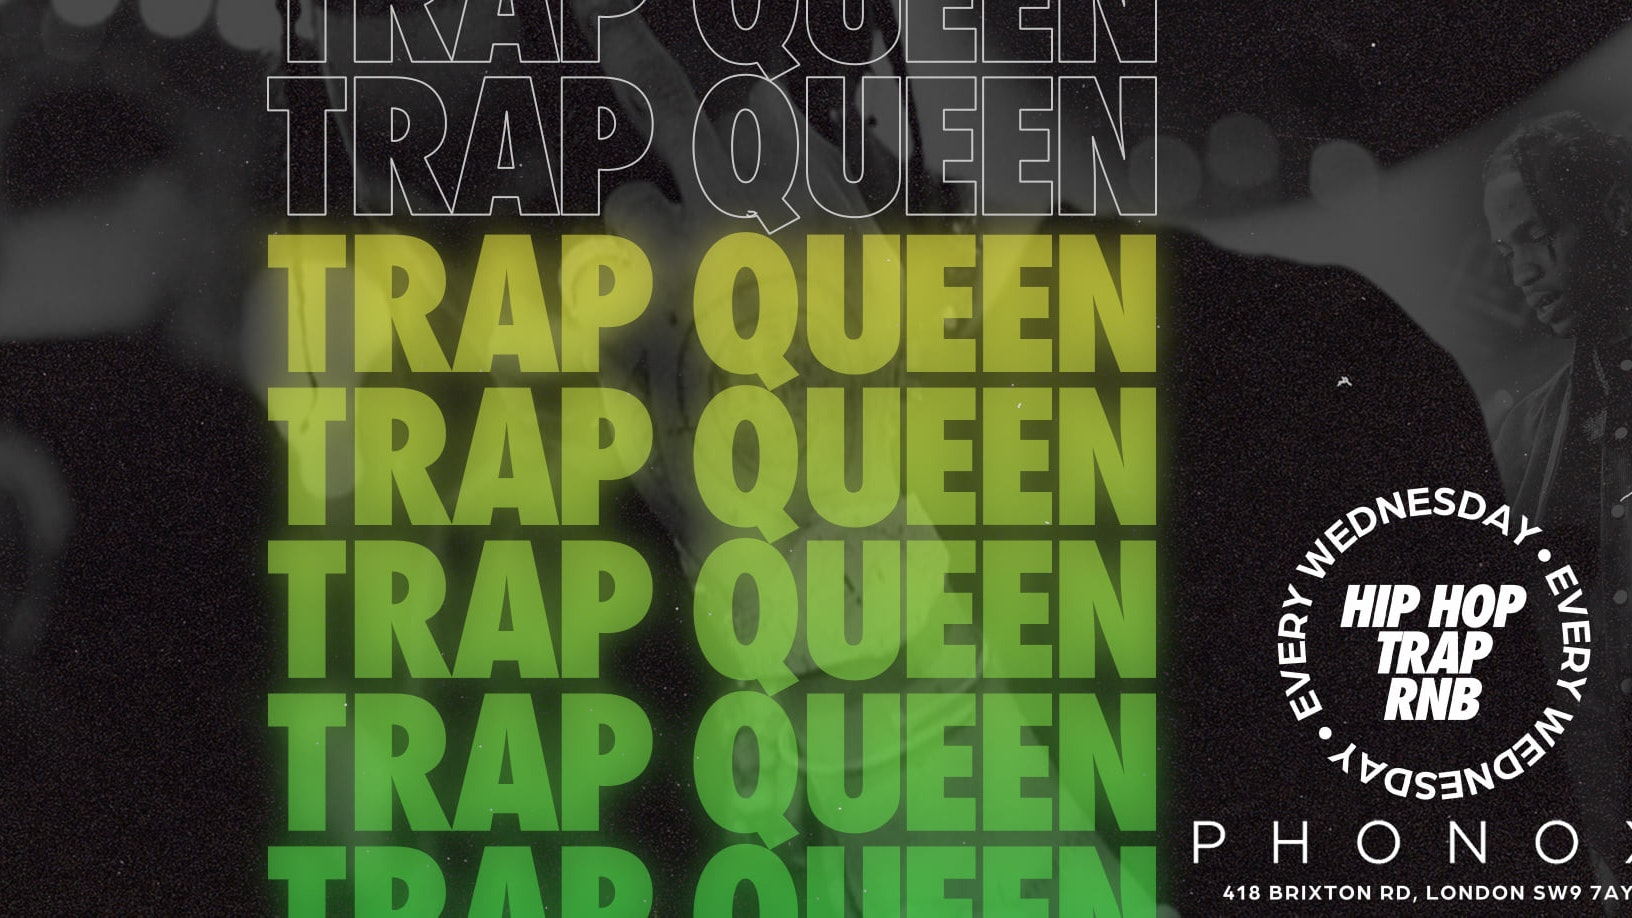 TRAP QUEEN 👑  Every Wednesday : Hip Hop, Trap, R&B And All Things Trill at PHONOX